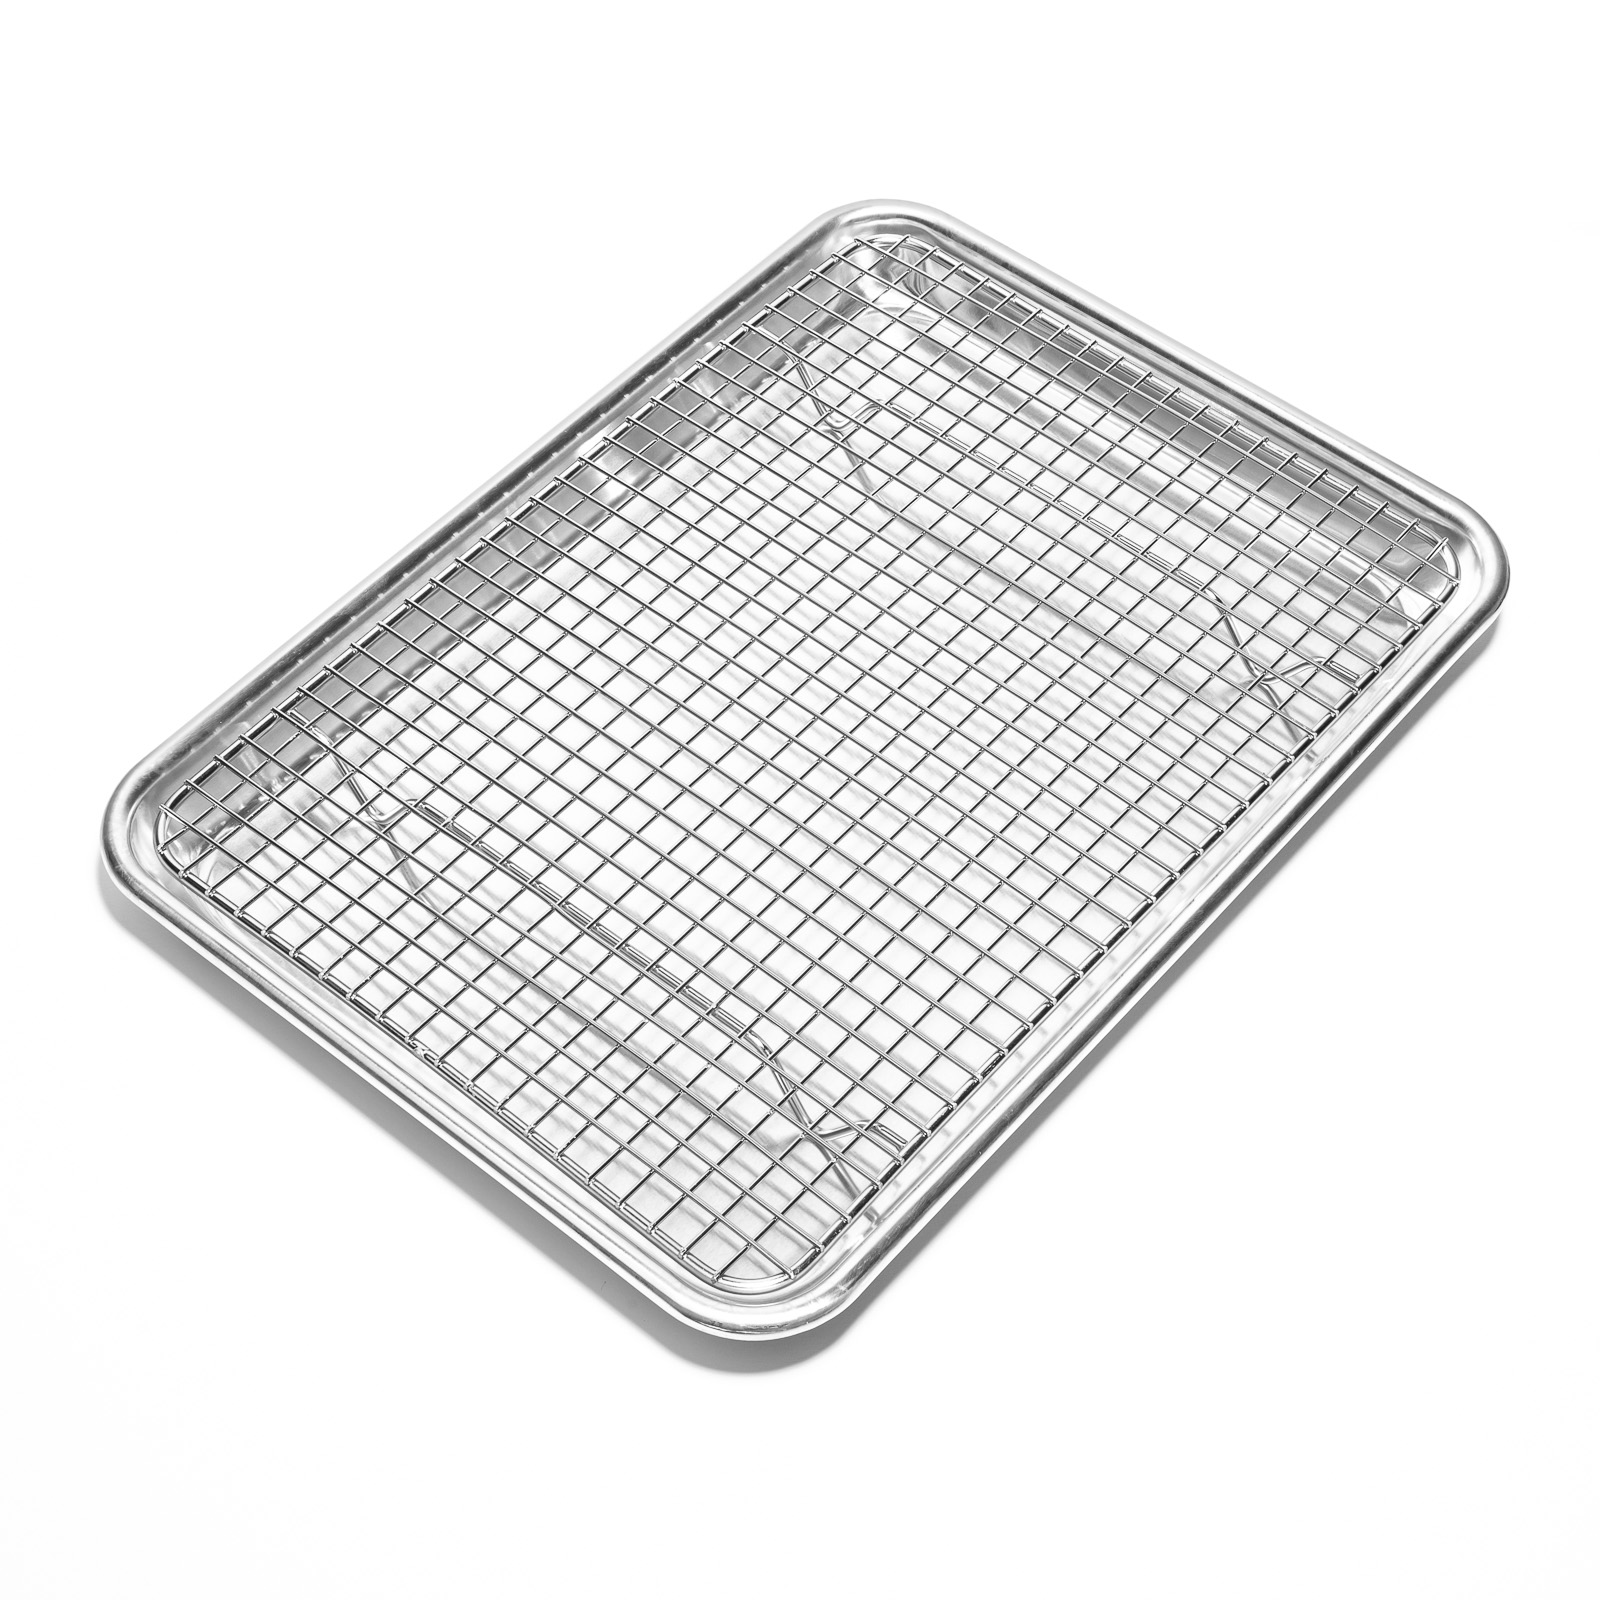 Stainless Steel Baking Amp Cooling Wire Rack Fits Jelly Roll